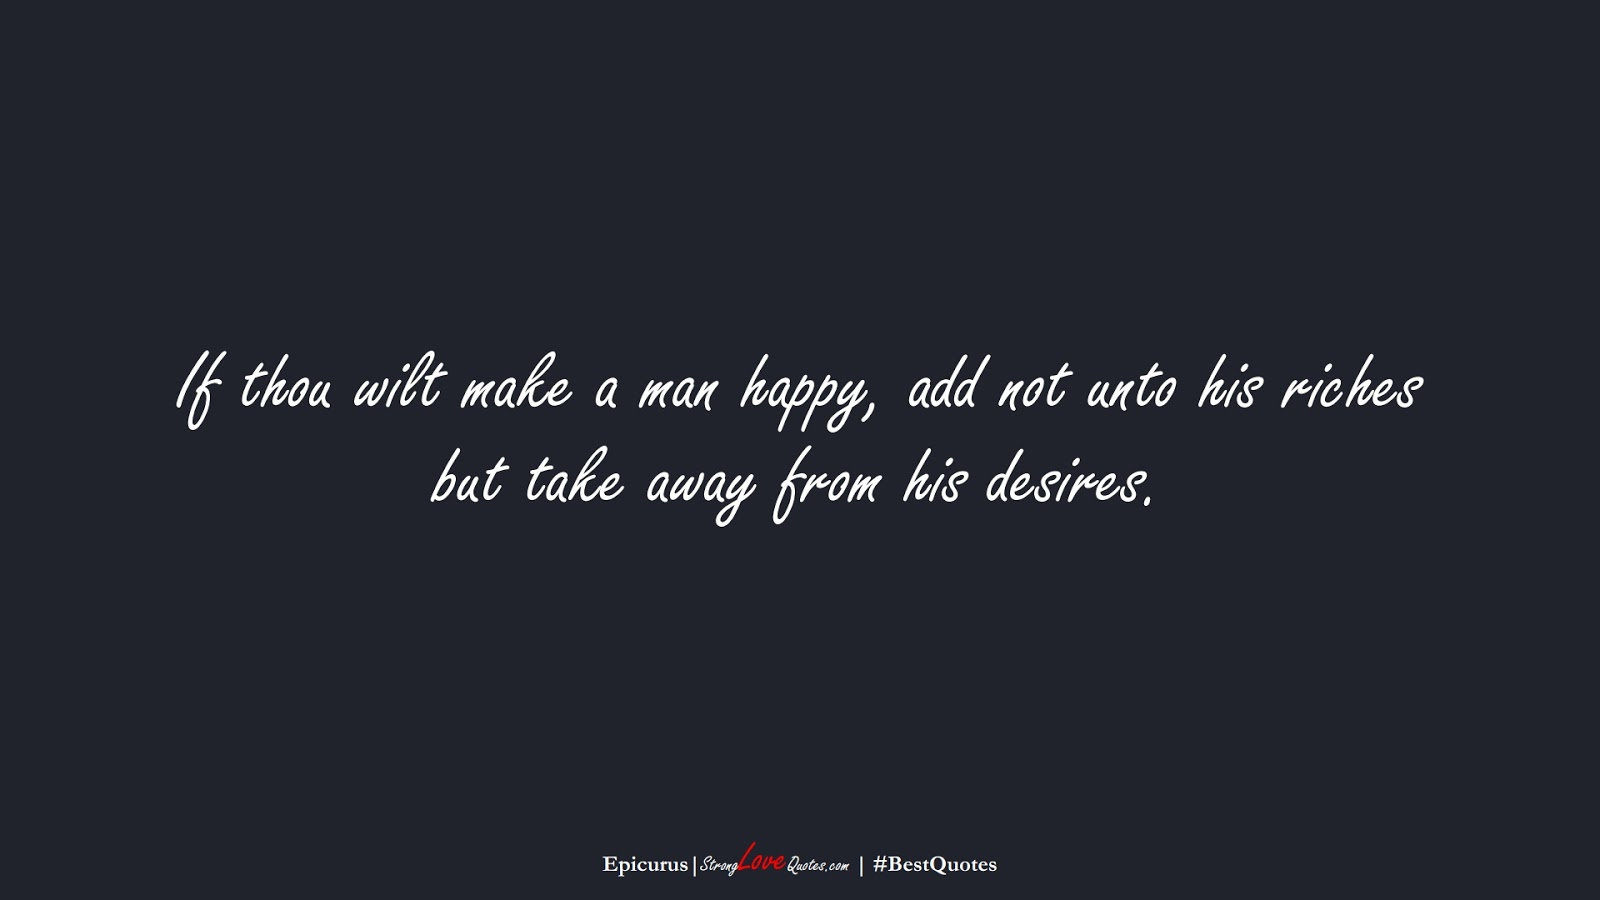 If thou wilt make a man happy, add not unto his riches but take away from his desires. (Epicurus);  #BestQuotes